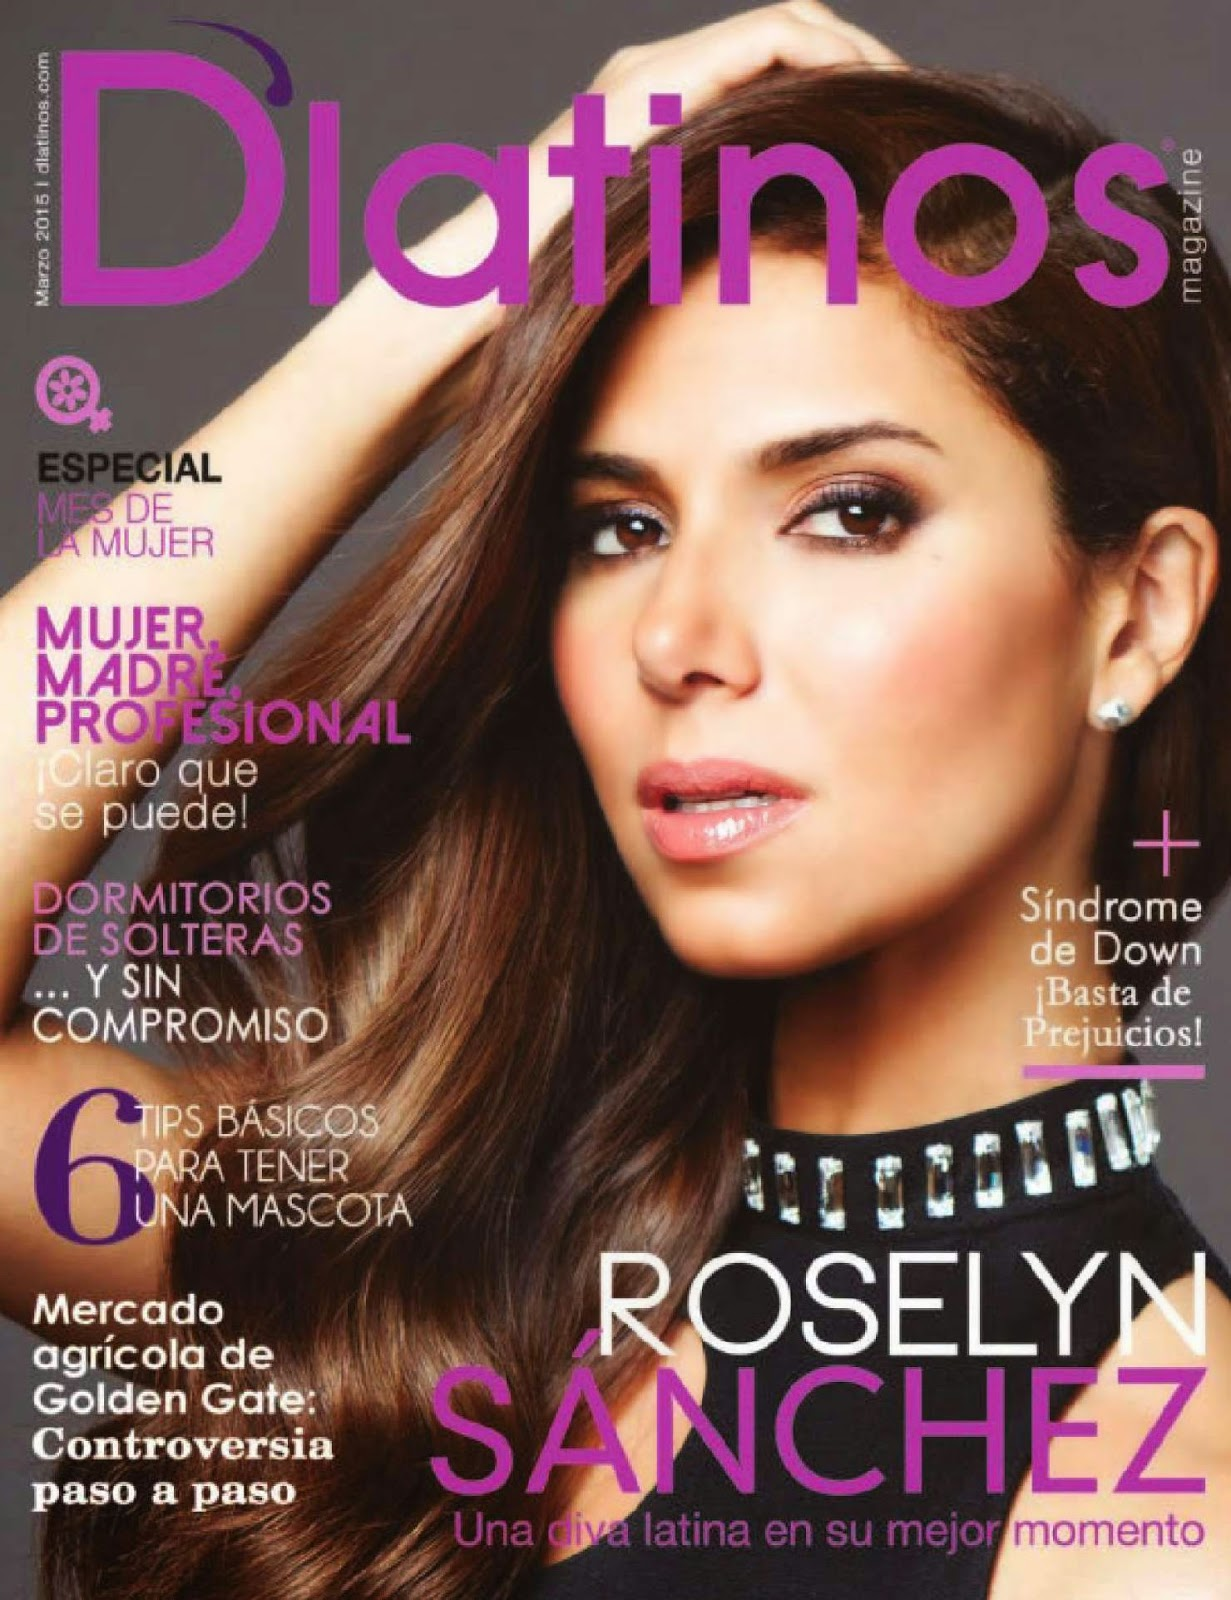 Actress, Singer-Songwriter, Model @ Roselyn Sanchez - D'Latinos, March 2015 Issue